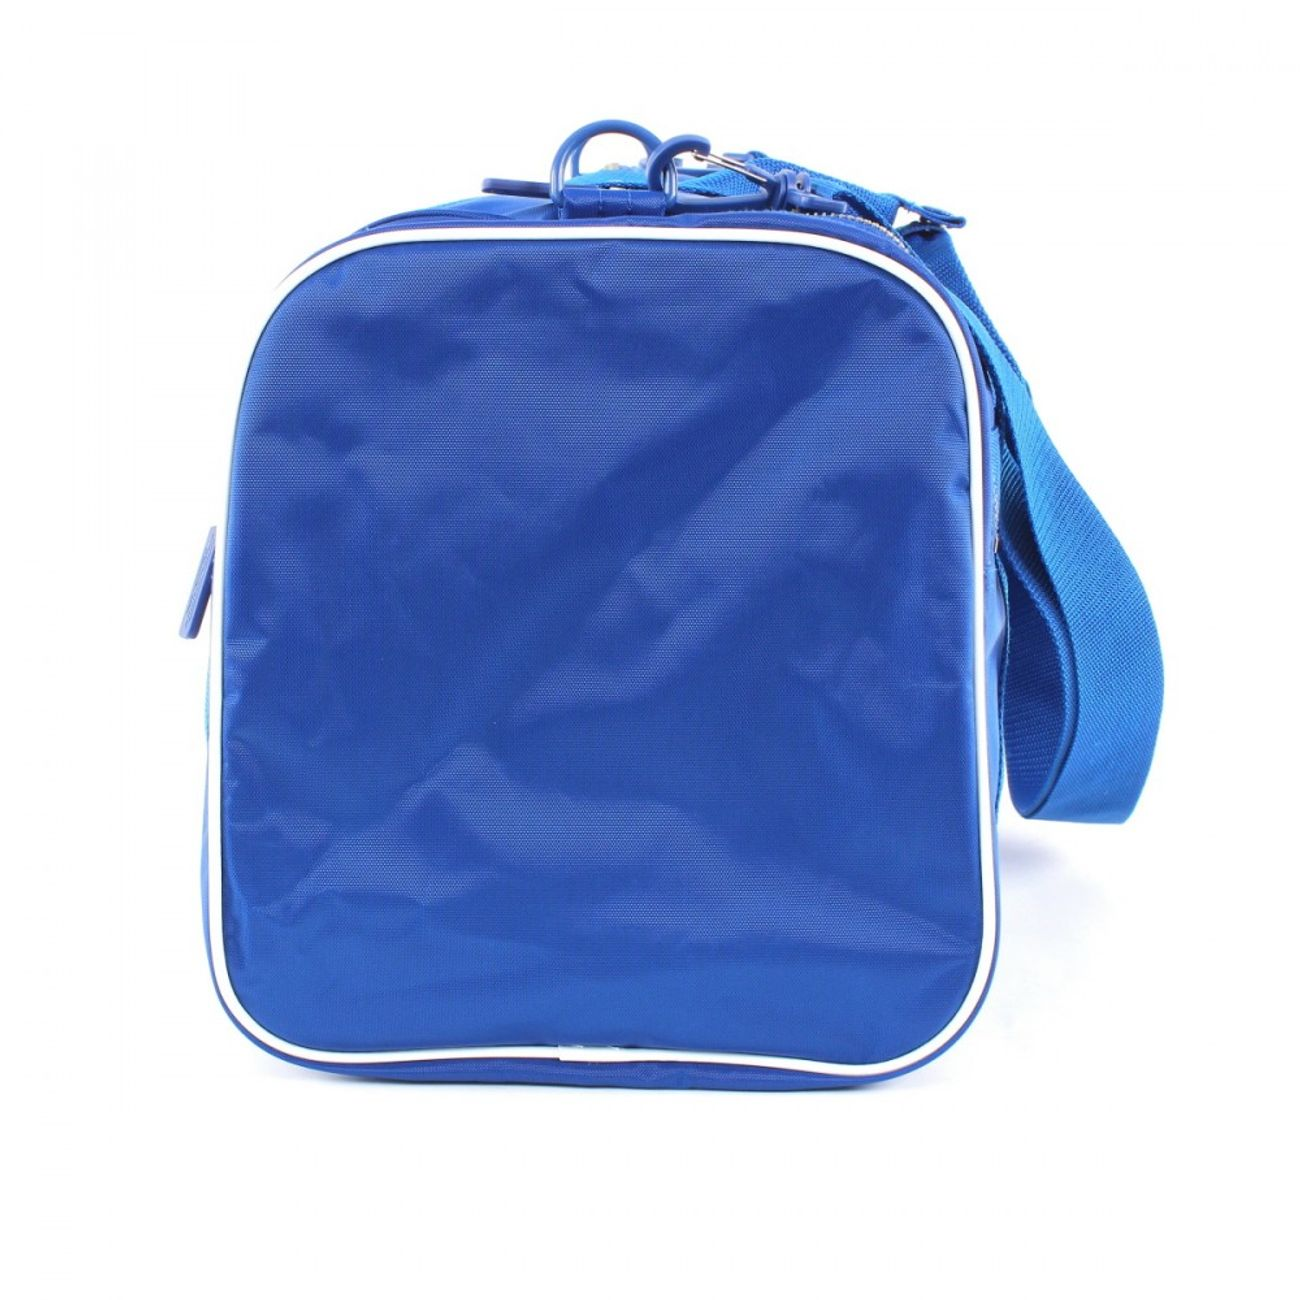 4f223ddd82 ... Mode- Lifestyle ADIDAS ORIGINALS Sac Duffle L Adidas Originals ...